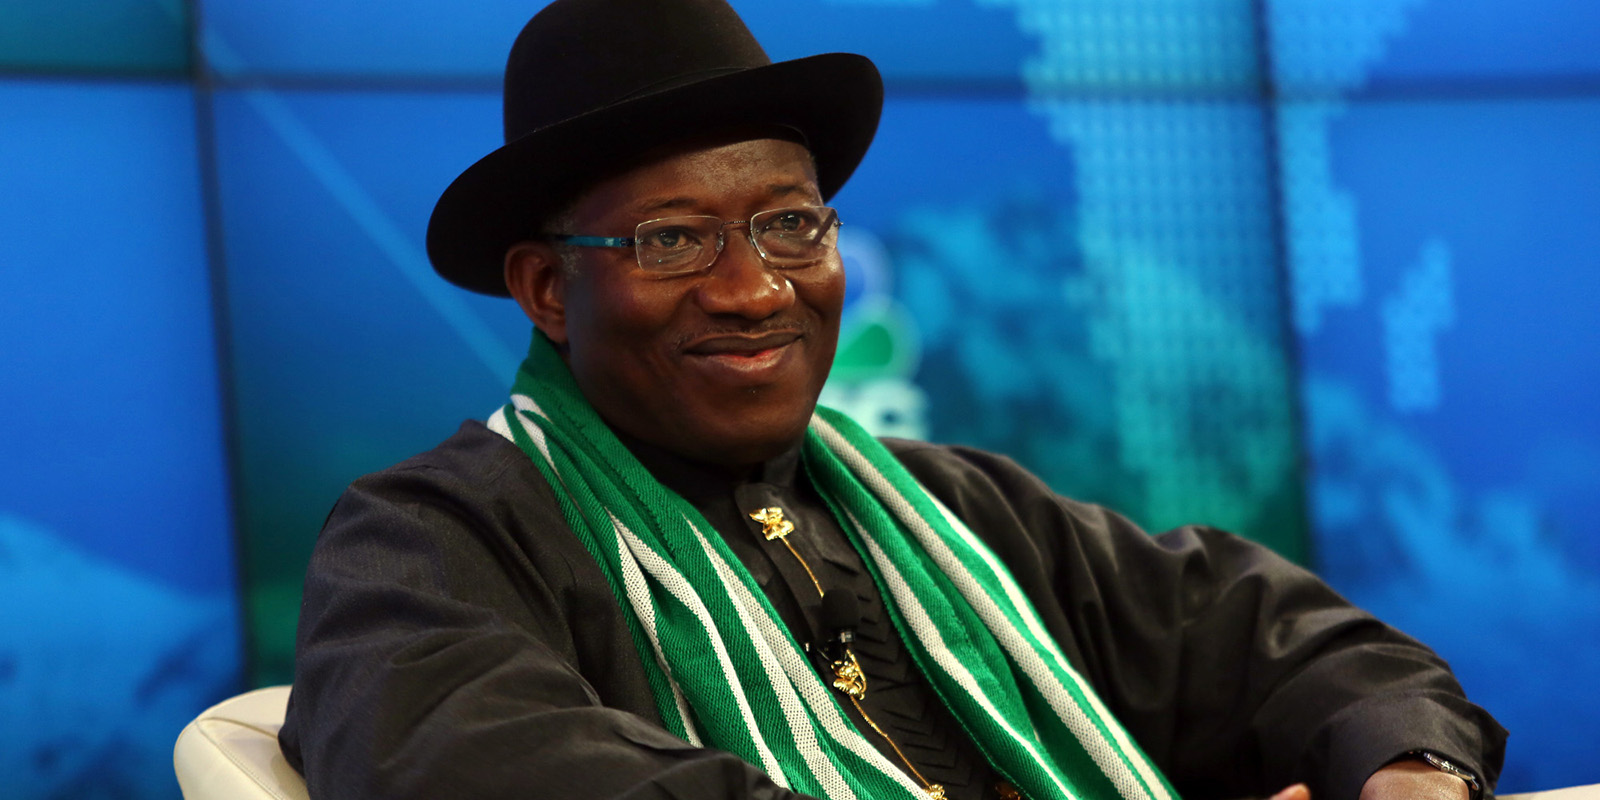 Nigerian government - President Goodluck Jonathan